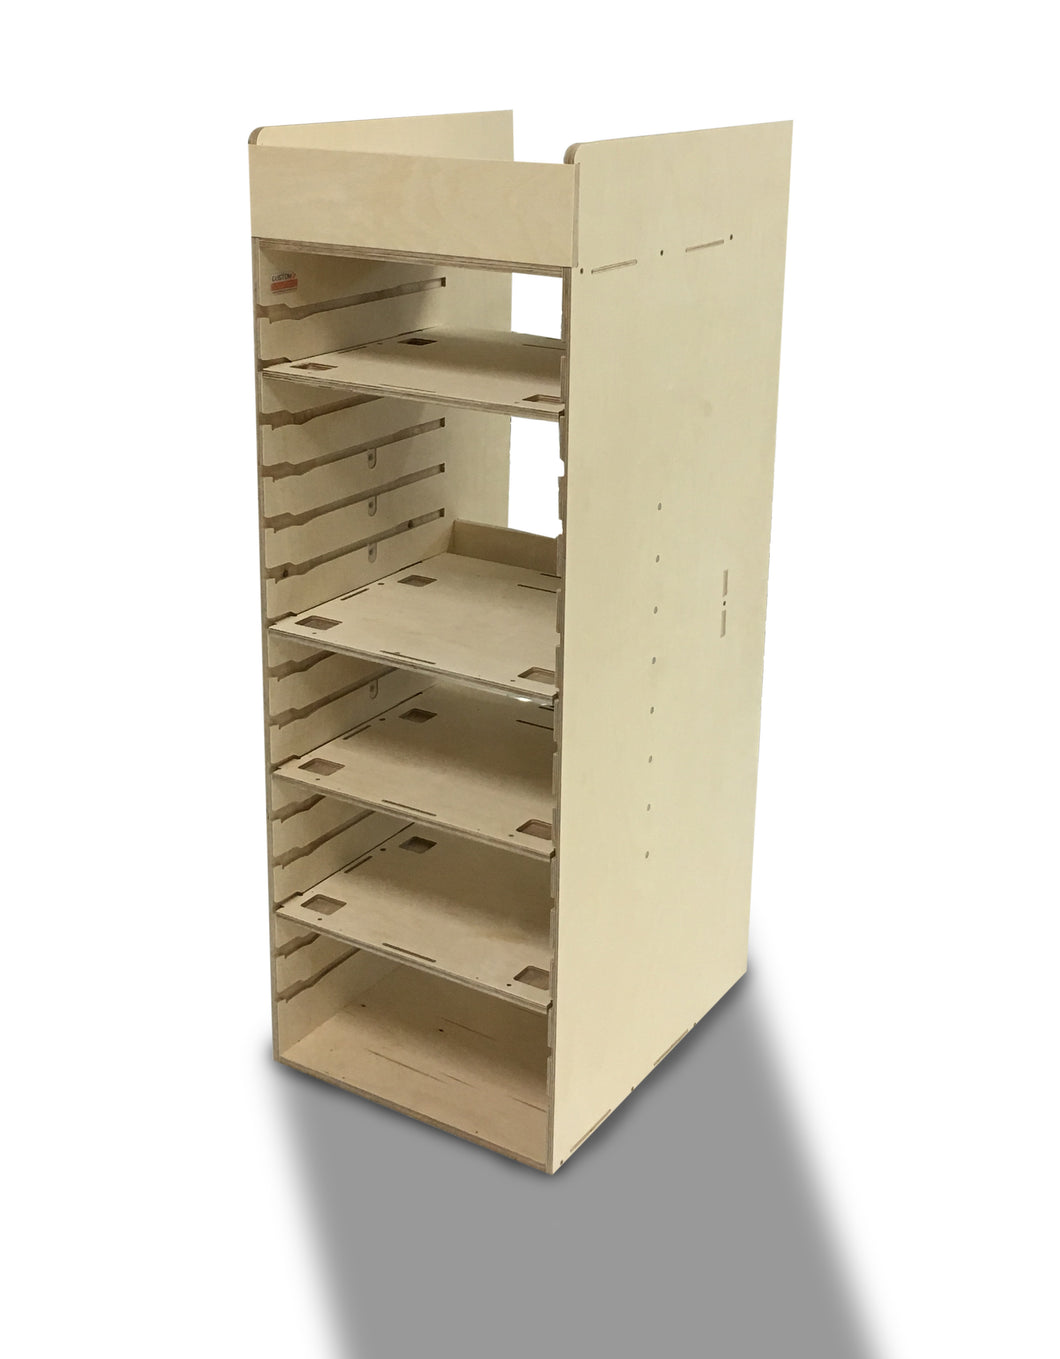 Van racking to suit Festool< sustainers, tanos storage boxes, box racking, unique system manufactured from birch ply.